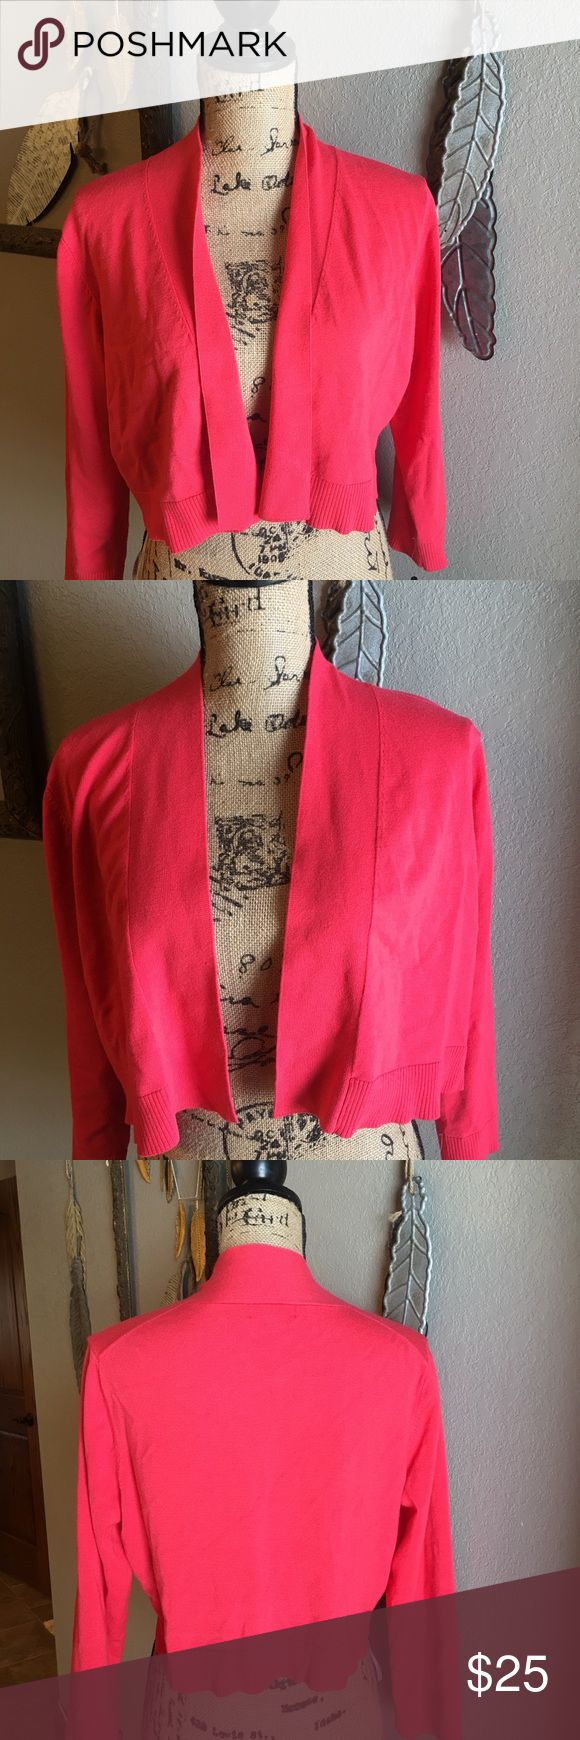 Calvin Klein Coral Shrug Sweater XL NWT Calvin Klein Coral Shrug Sweater XL NWT. This sweater is super versatile an can be worn over a sundress or with pants. This color looks beautiful with olive green and many other colors. Calvin Klein Sweaters Shrugs & Ponchos